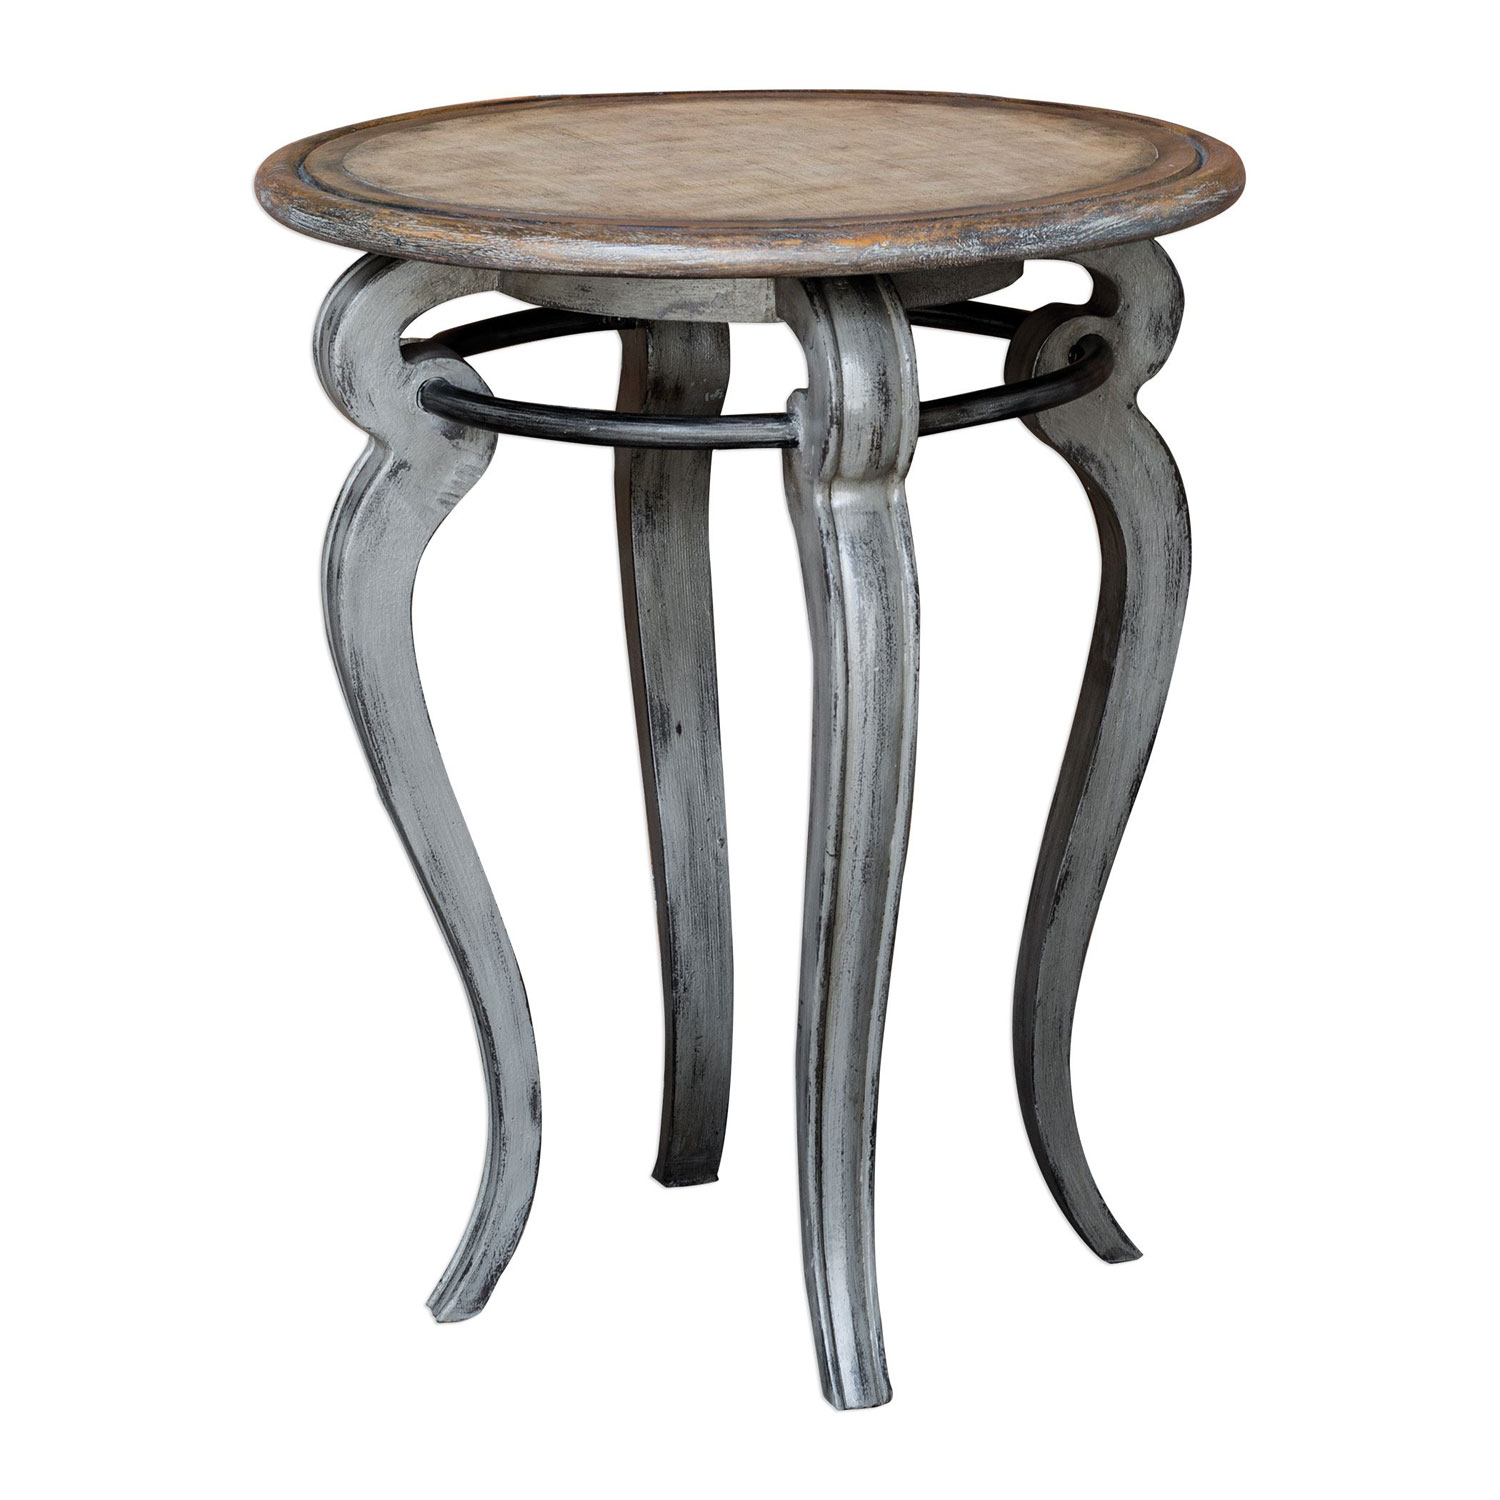 uttermost mariah round gray accent table bellacor wood hover zoom painted coffee ideas yellow pieces black bedroom white bedside cabinets patio umbrella base cute lamps pallet end